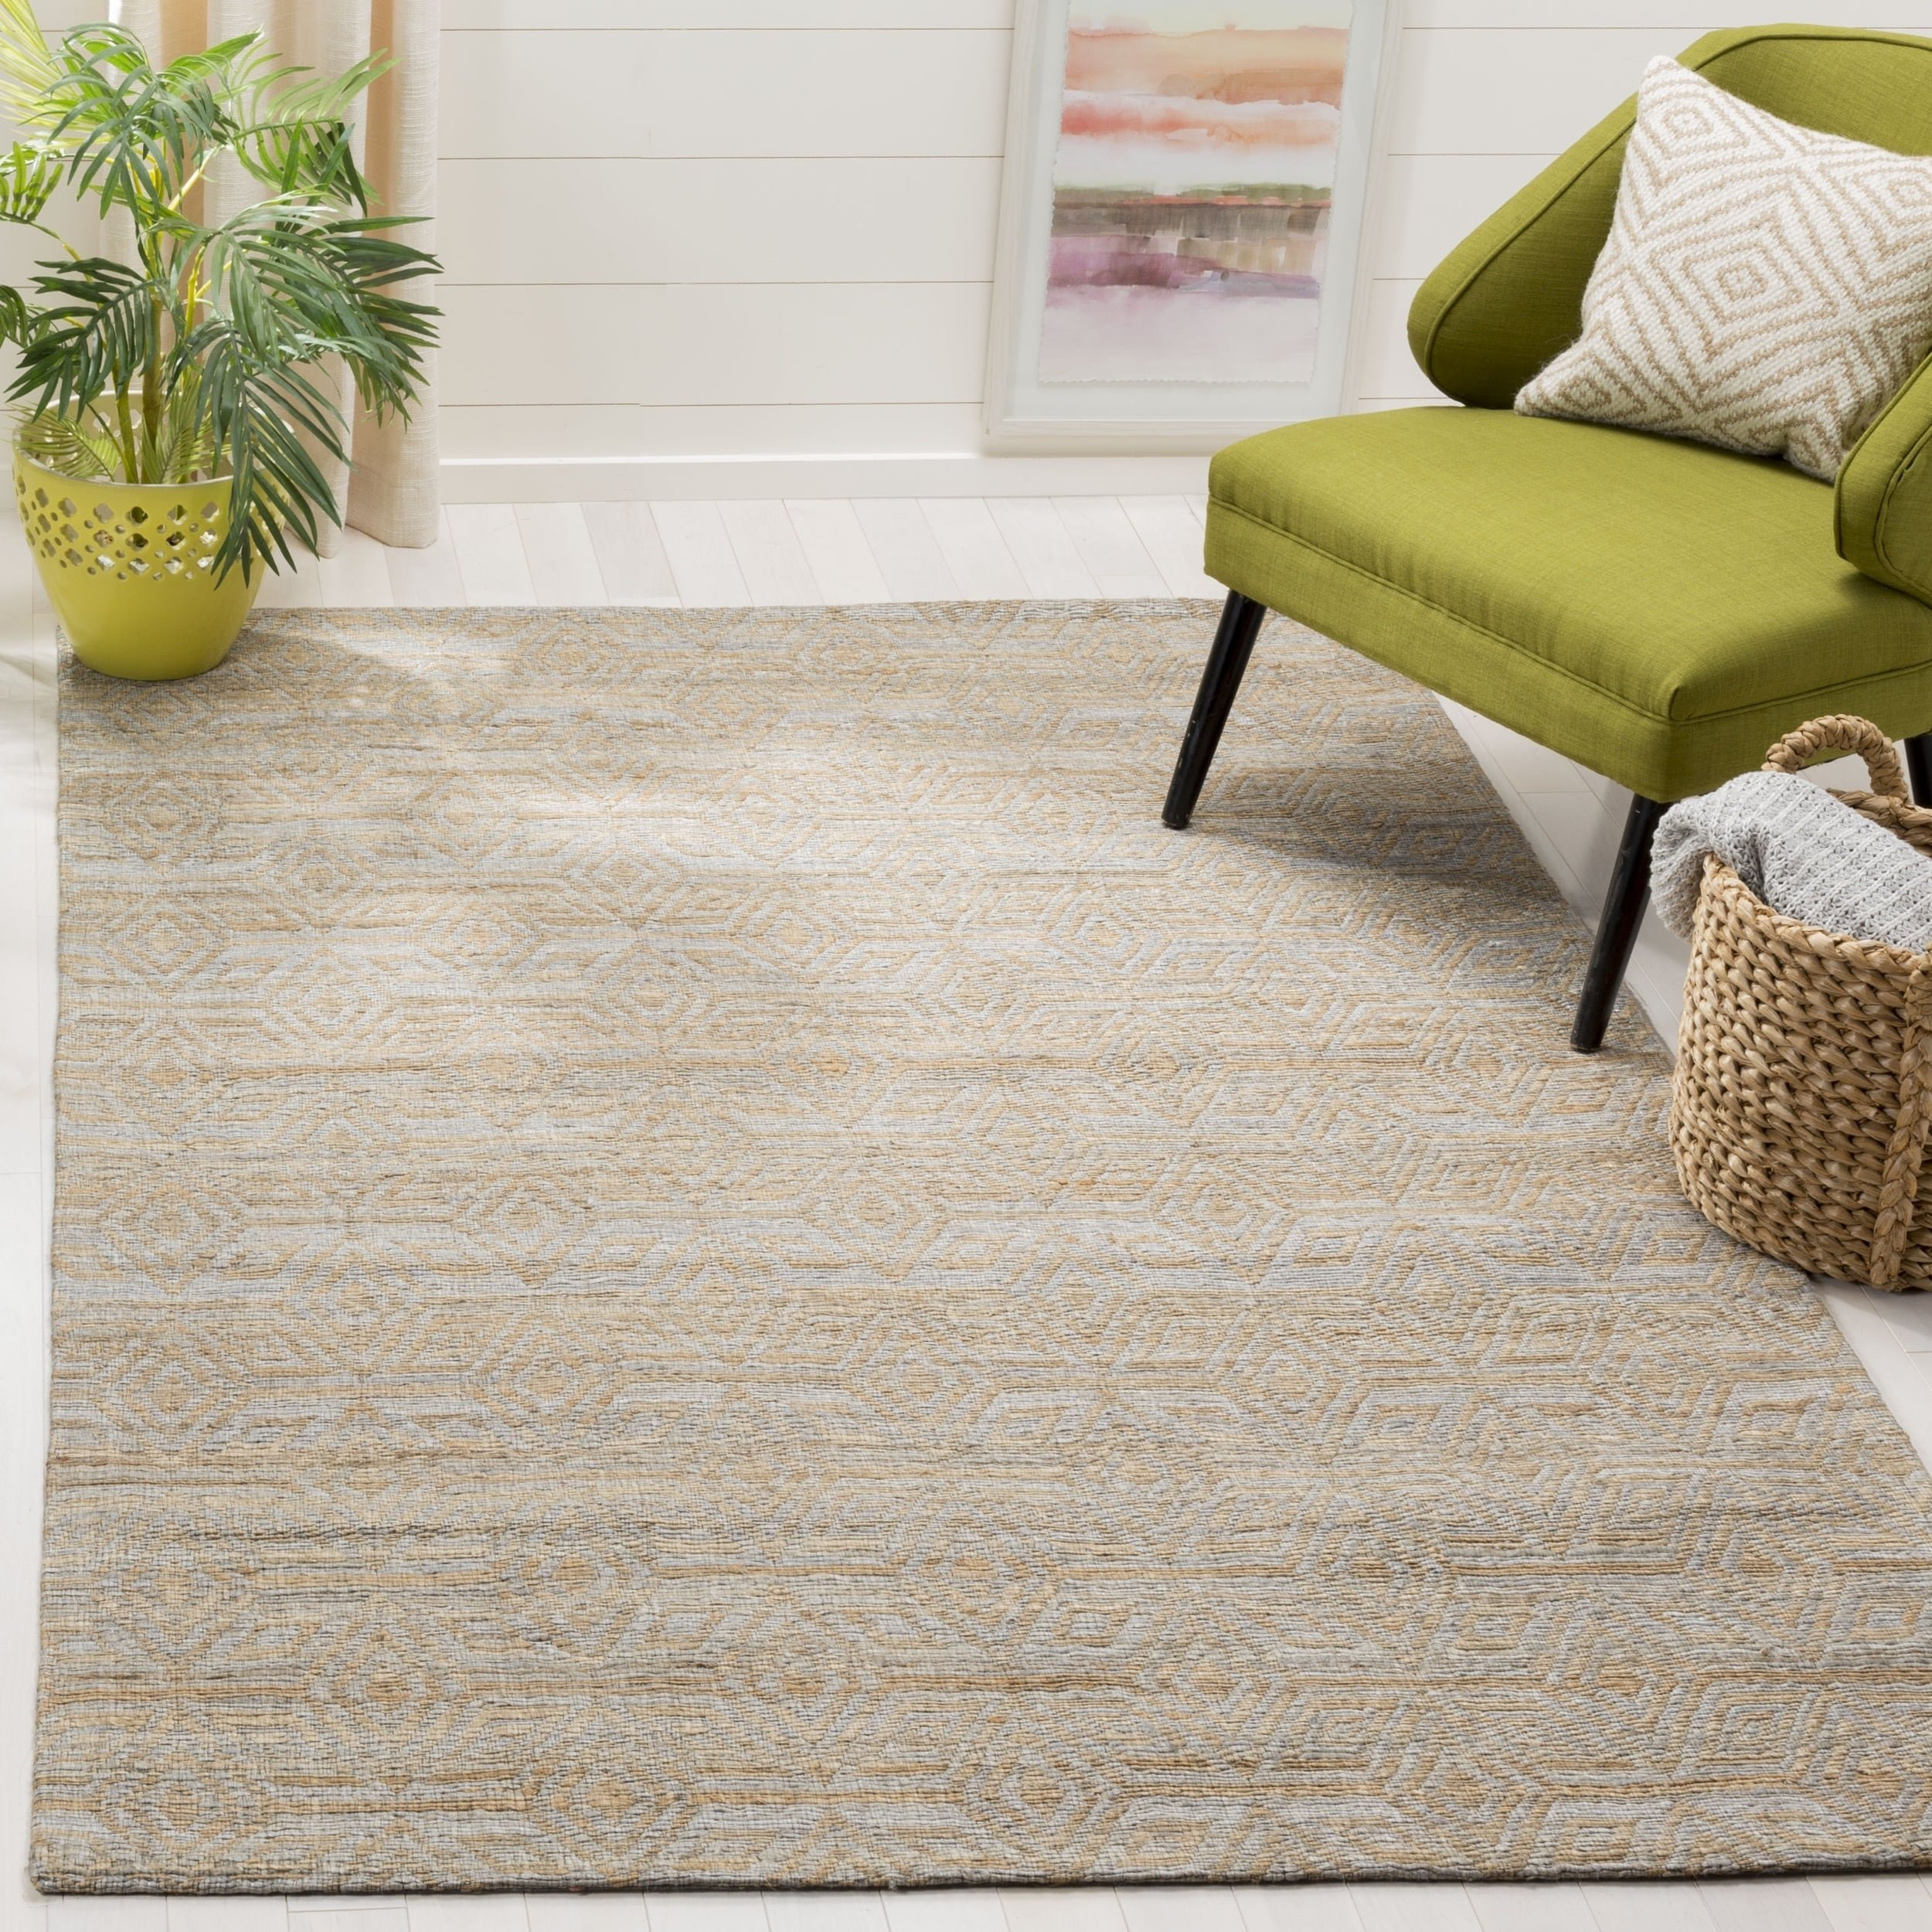 Safavieh Cape Cod Collection CAP412A Hand Woven Geometric Grey and Sand Jute and Cotton Area Rug (5' x 8') by Safavieh